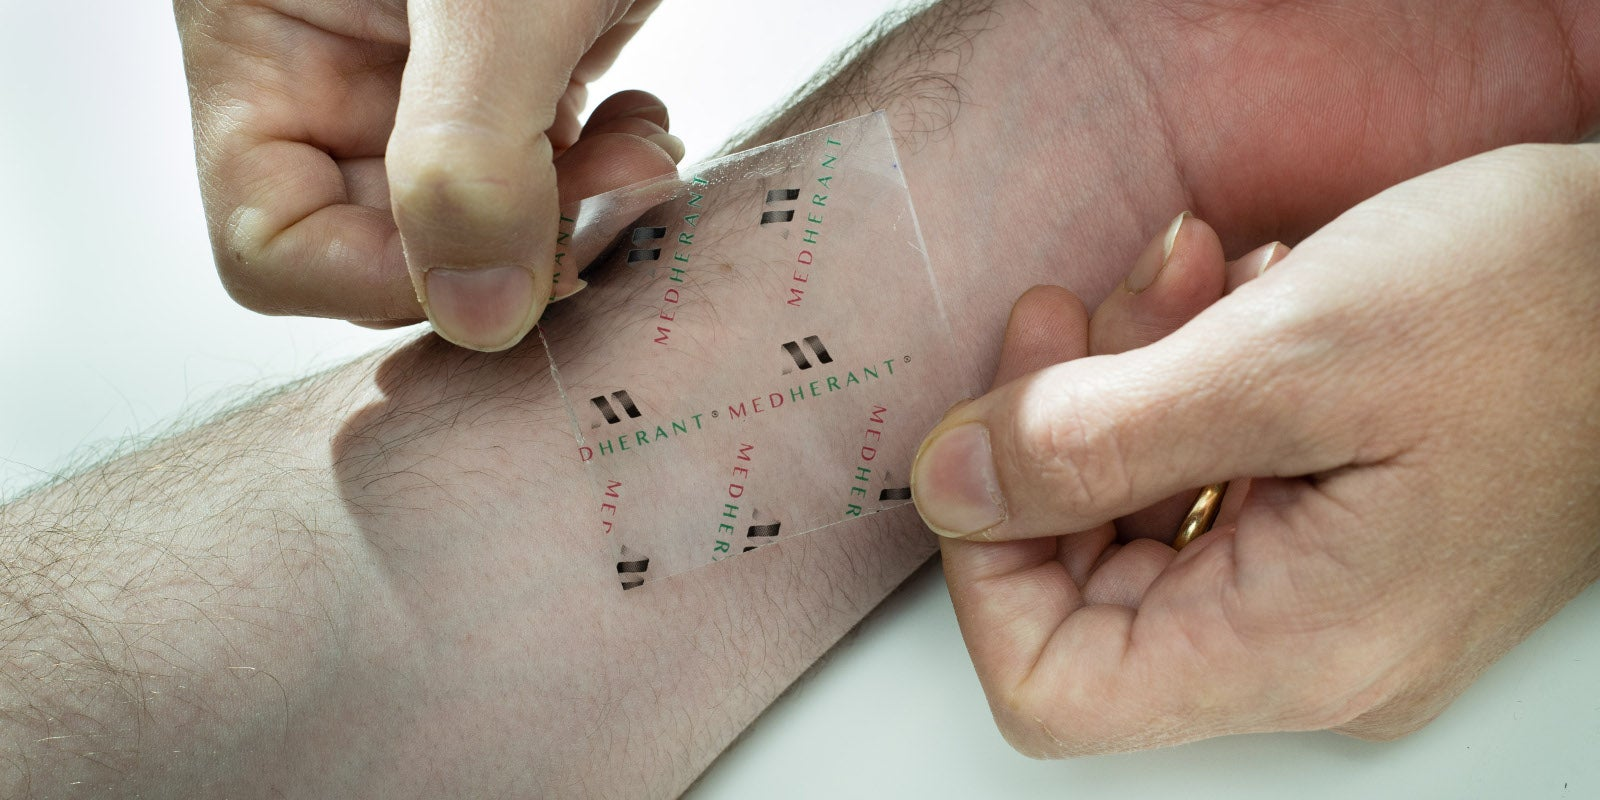 World's First Ibuprofen Patch Can Relieve Pain for 12 Hours Straight